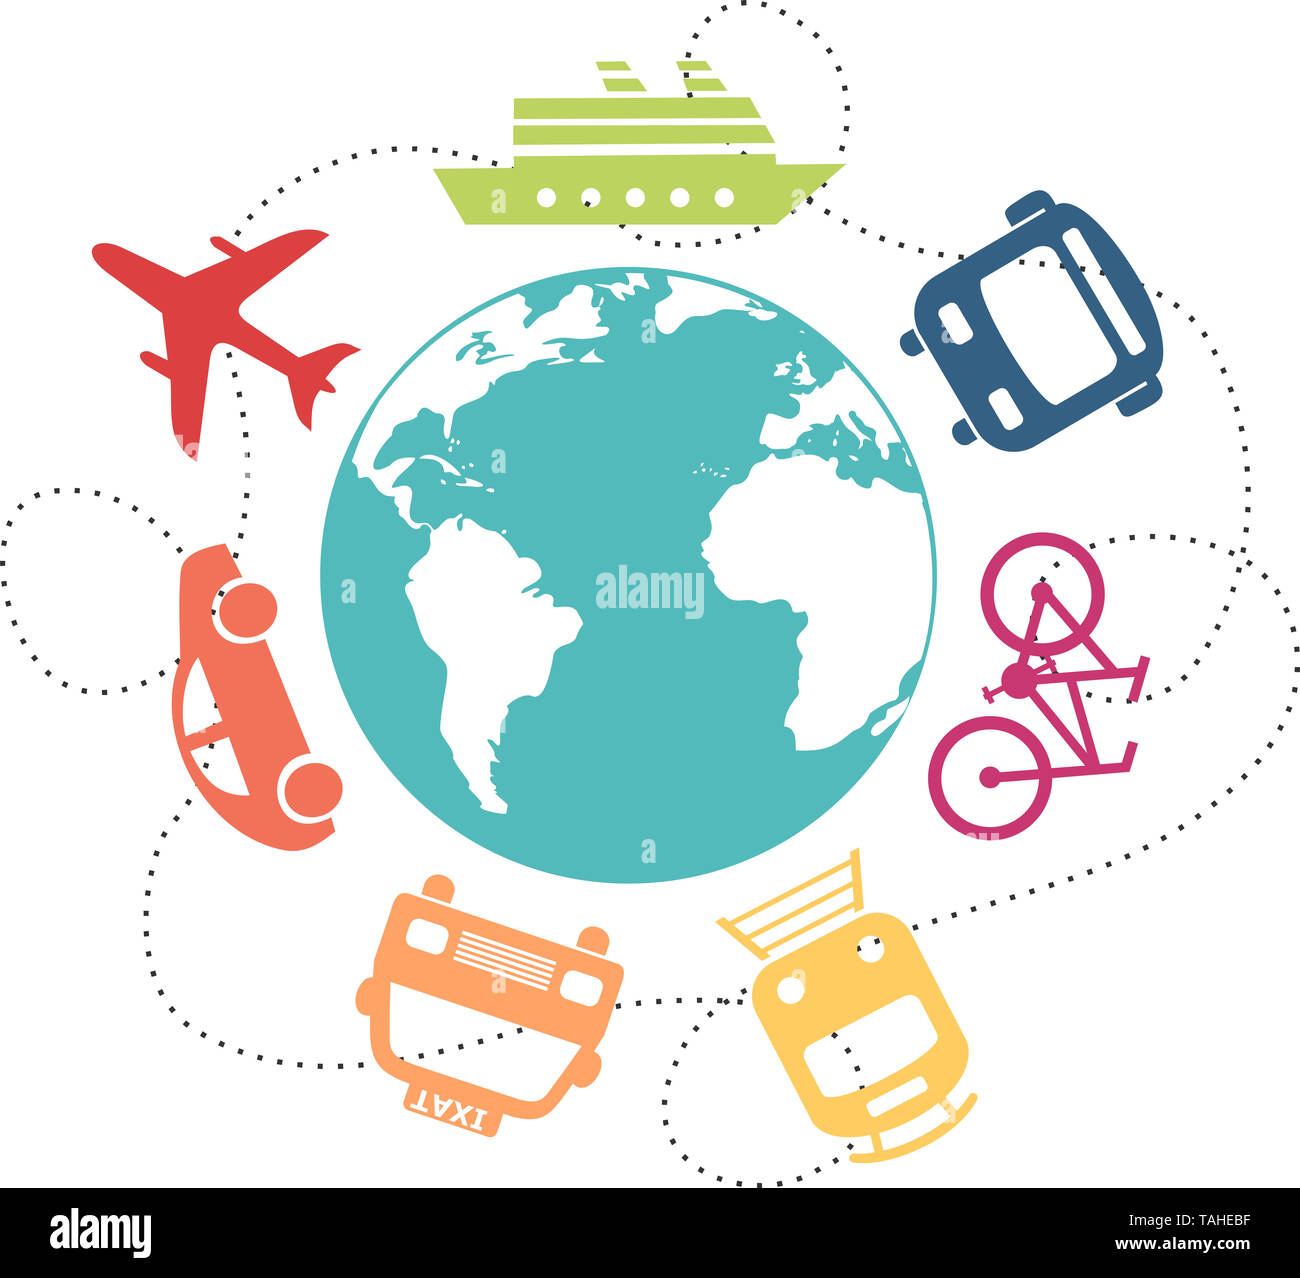 Different means of transport around a globe - Stock Image